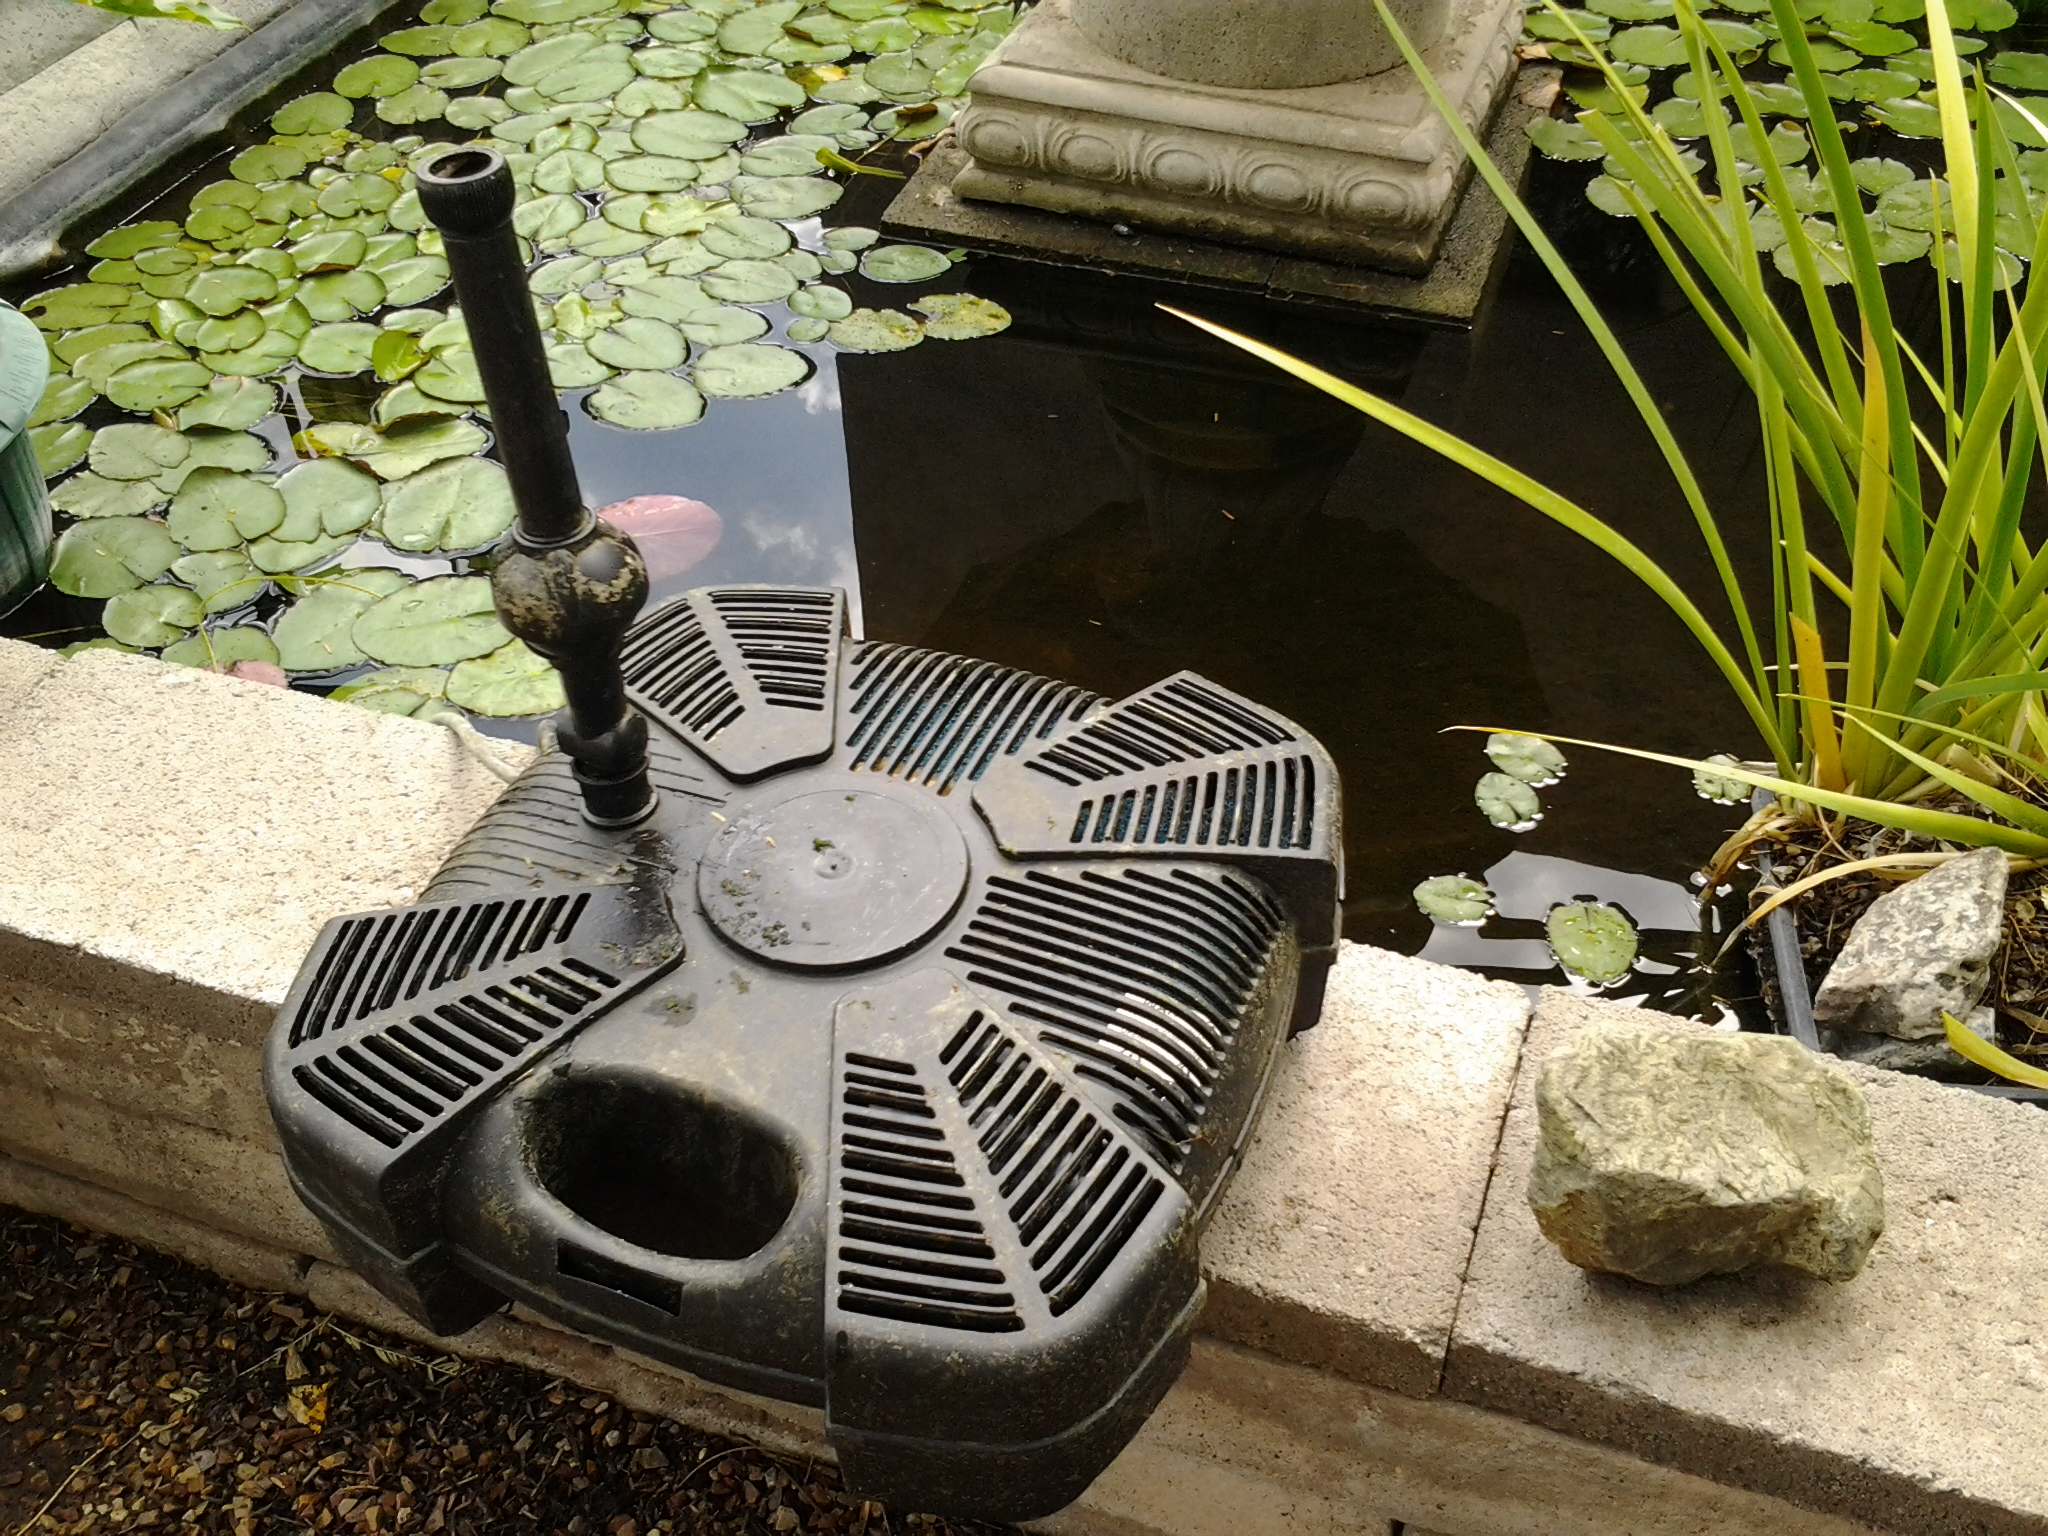 Best pond filter system all in one lifegard pump with uv for Fish pond pumps and filters